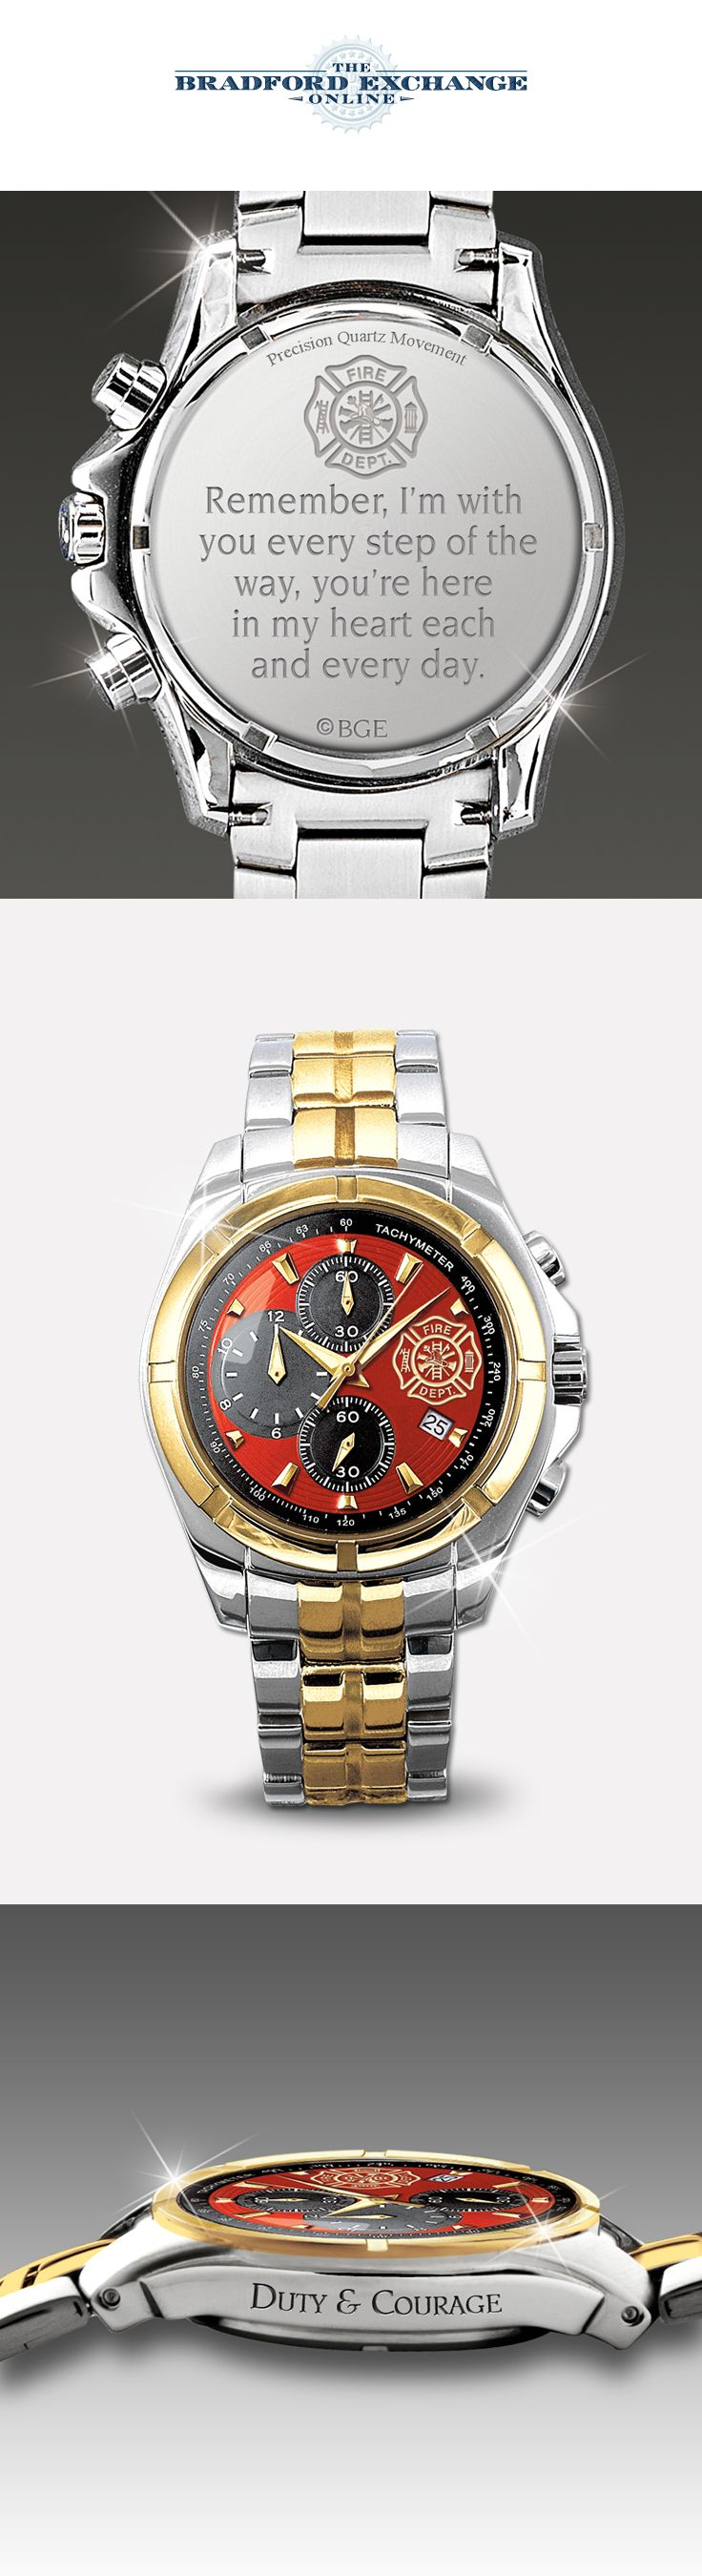 Honor the special hero in your life with this firefighter watch for men.